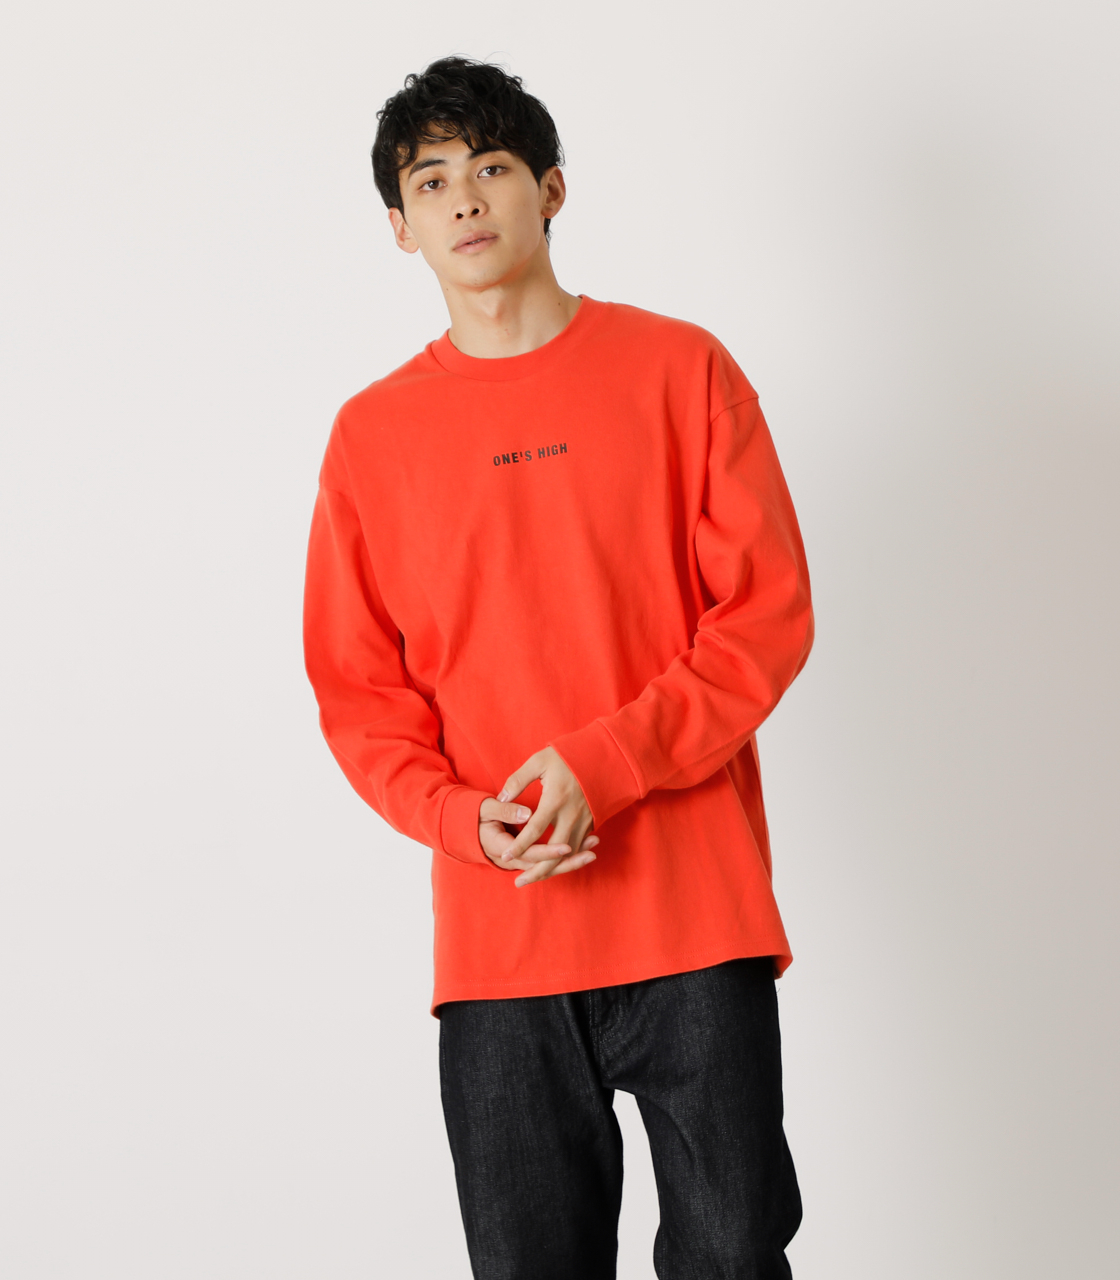 ONE'S HIGH LONG TEE/ワンズハイロングTシャツ 詳細画像 D/ORG 1